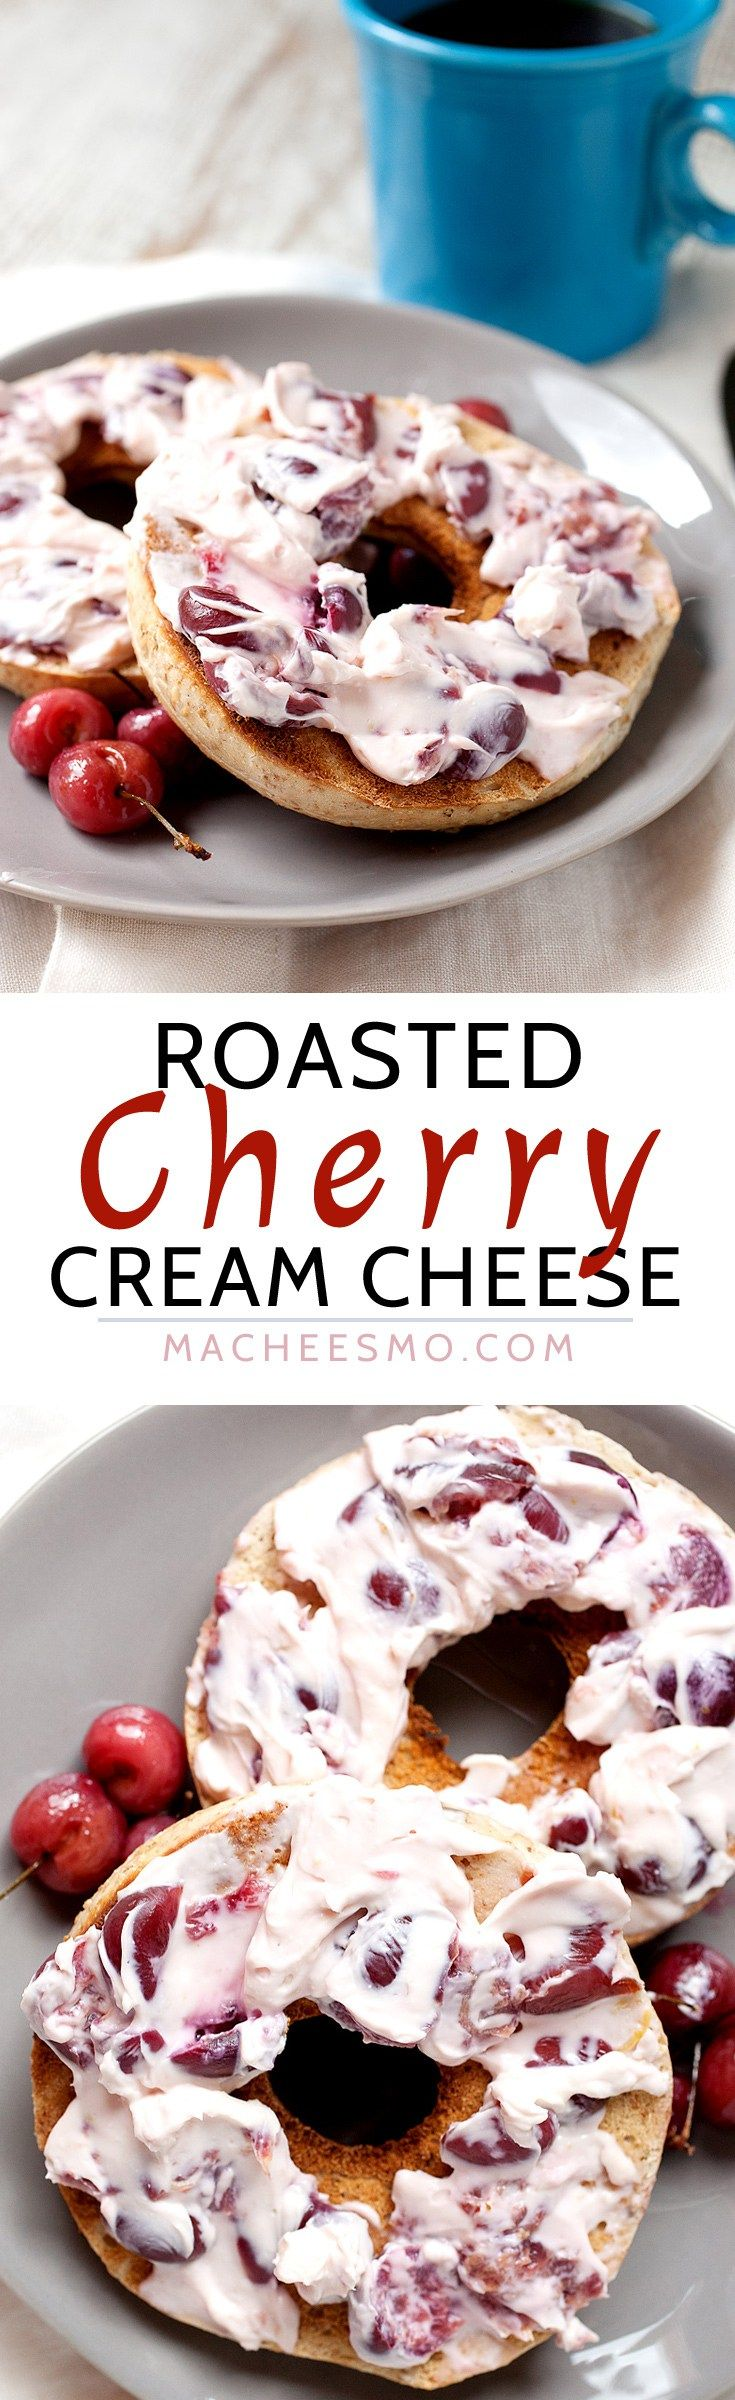 Roasted Cherry Cream Cheese: Not a bagel topper you can buy in the store, but a perfect one to make at home when delicious ripe cherries are in season. Lemon, honey, and packed full of roasted sweet cherries. | macheesmo.com